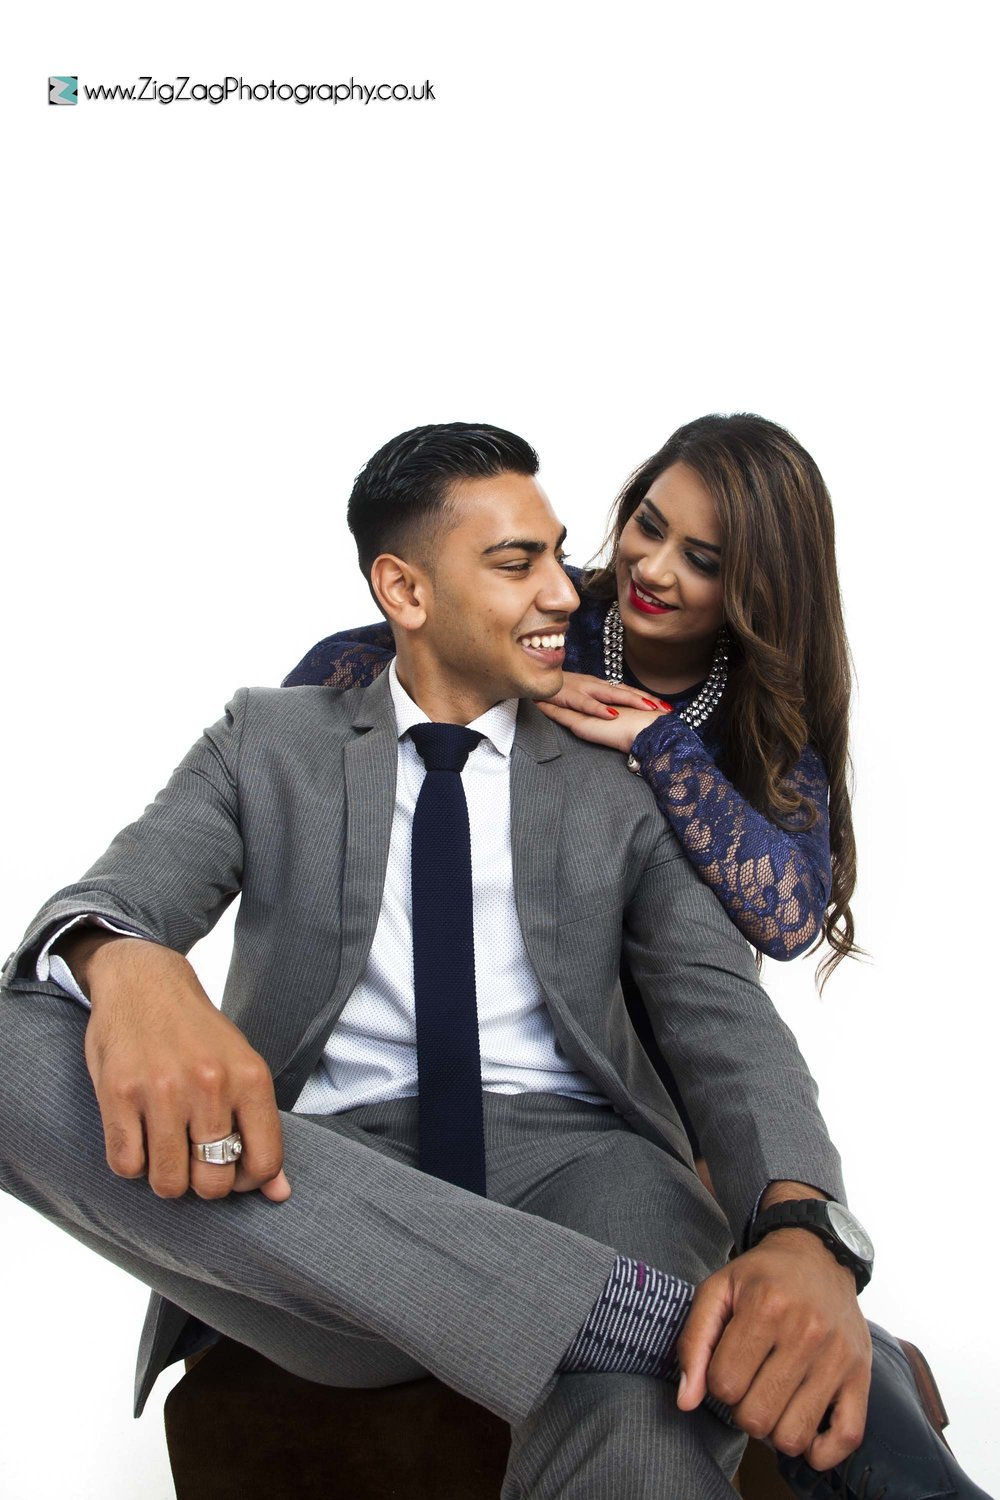 photography-session-studio-leicester-photoshoot-zigzag-couple-smart-suit-love-romantic-happy-ideas.jpg